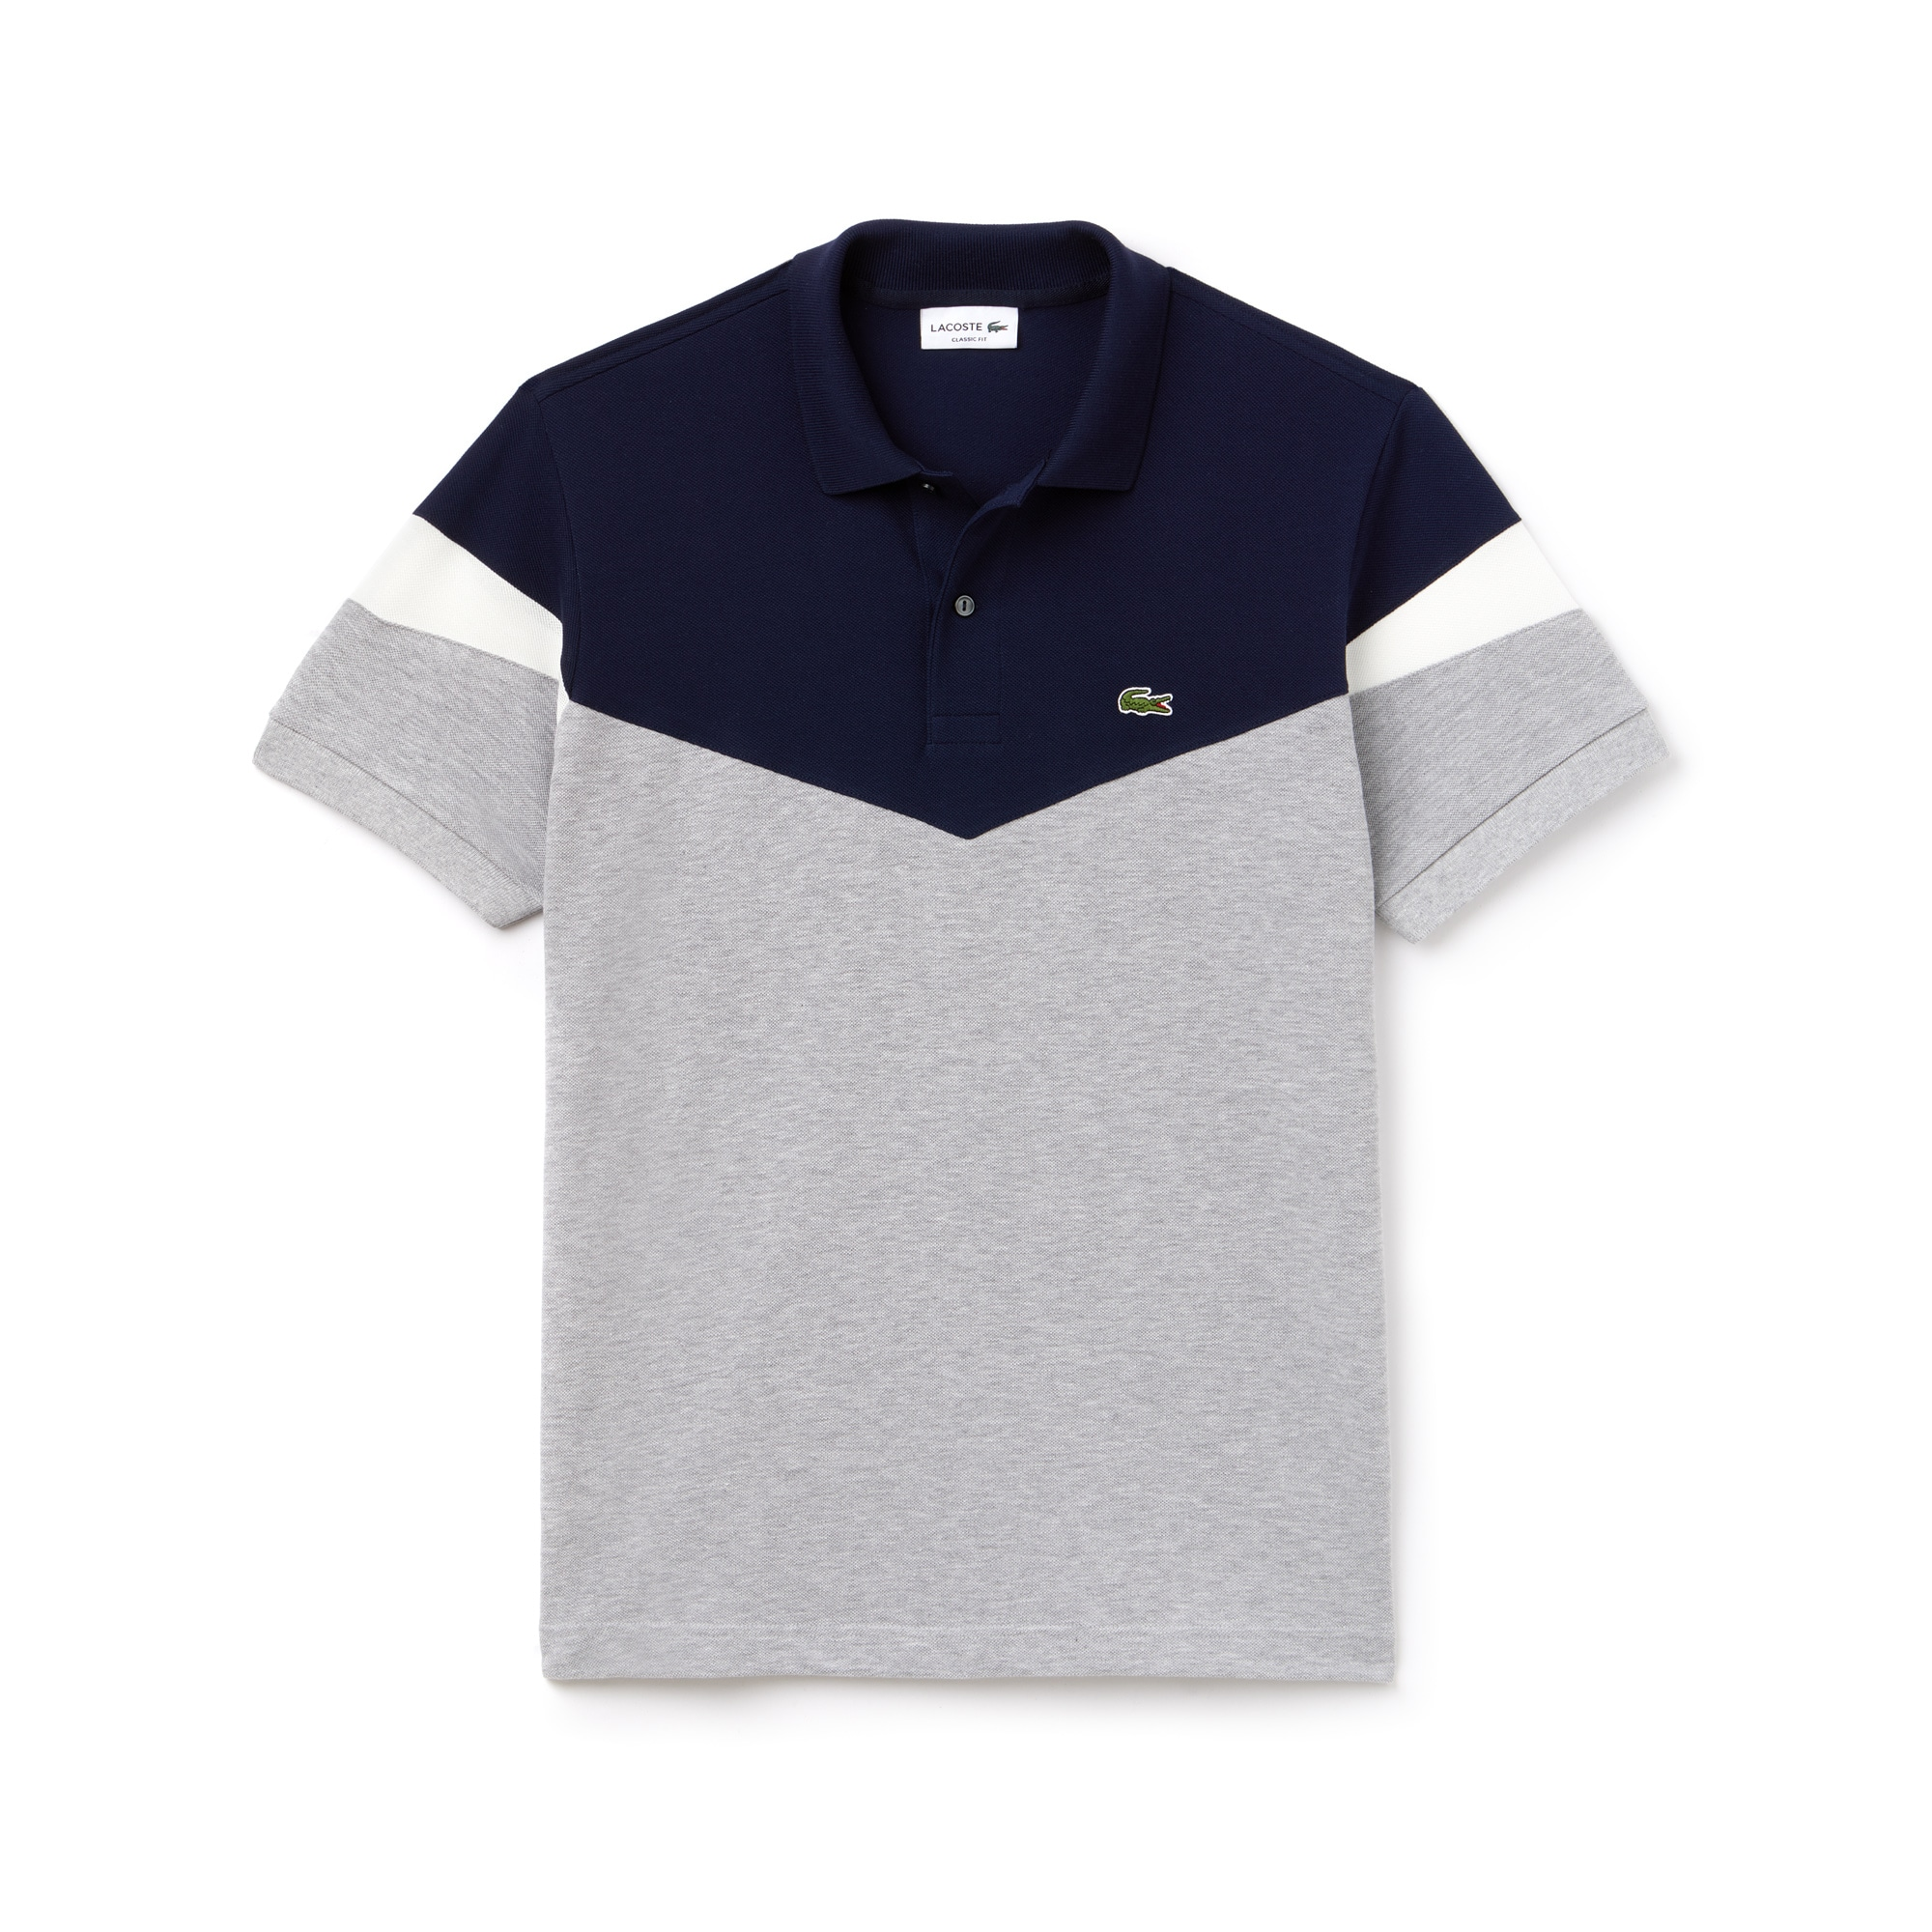 Men's Classic Fit Colorblock Cotton Petit Piqué Polo